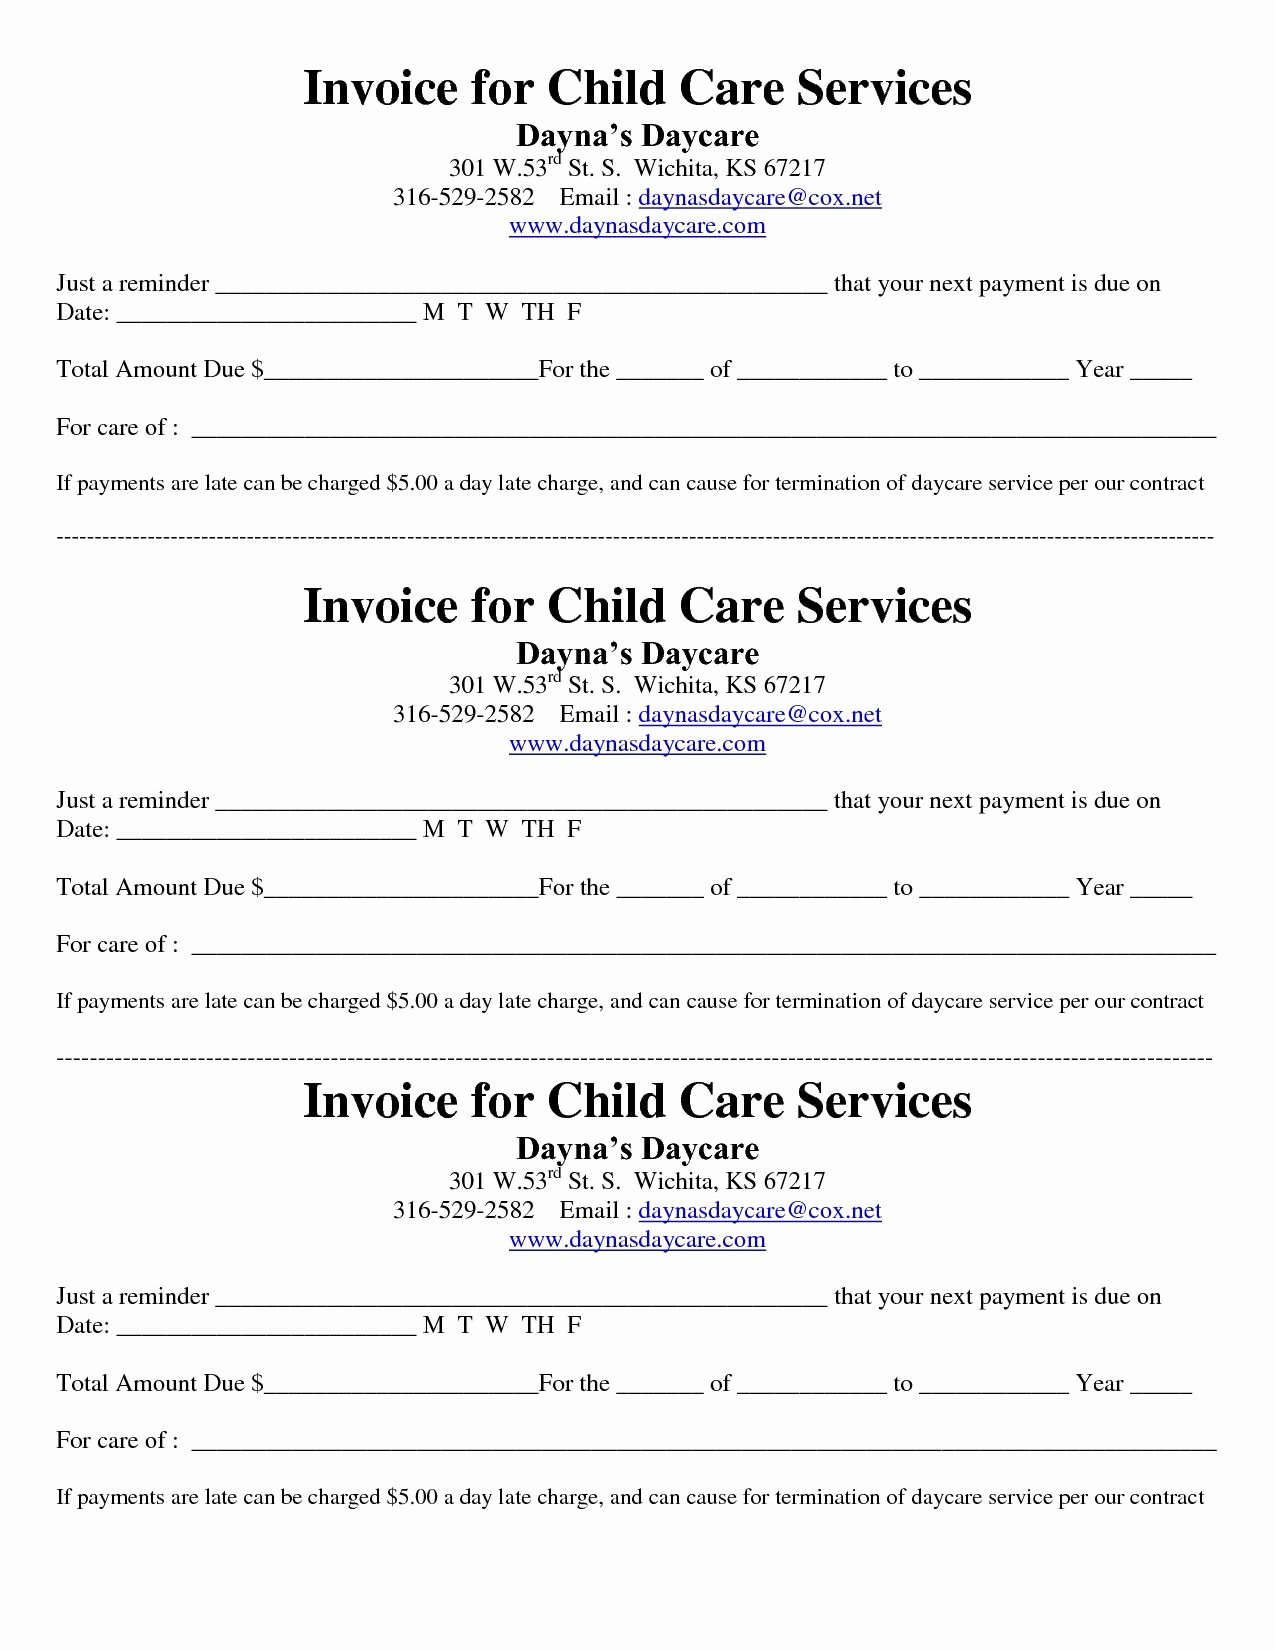 Child Care Receipt Template Lovely Child Care Receipt Invoice